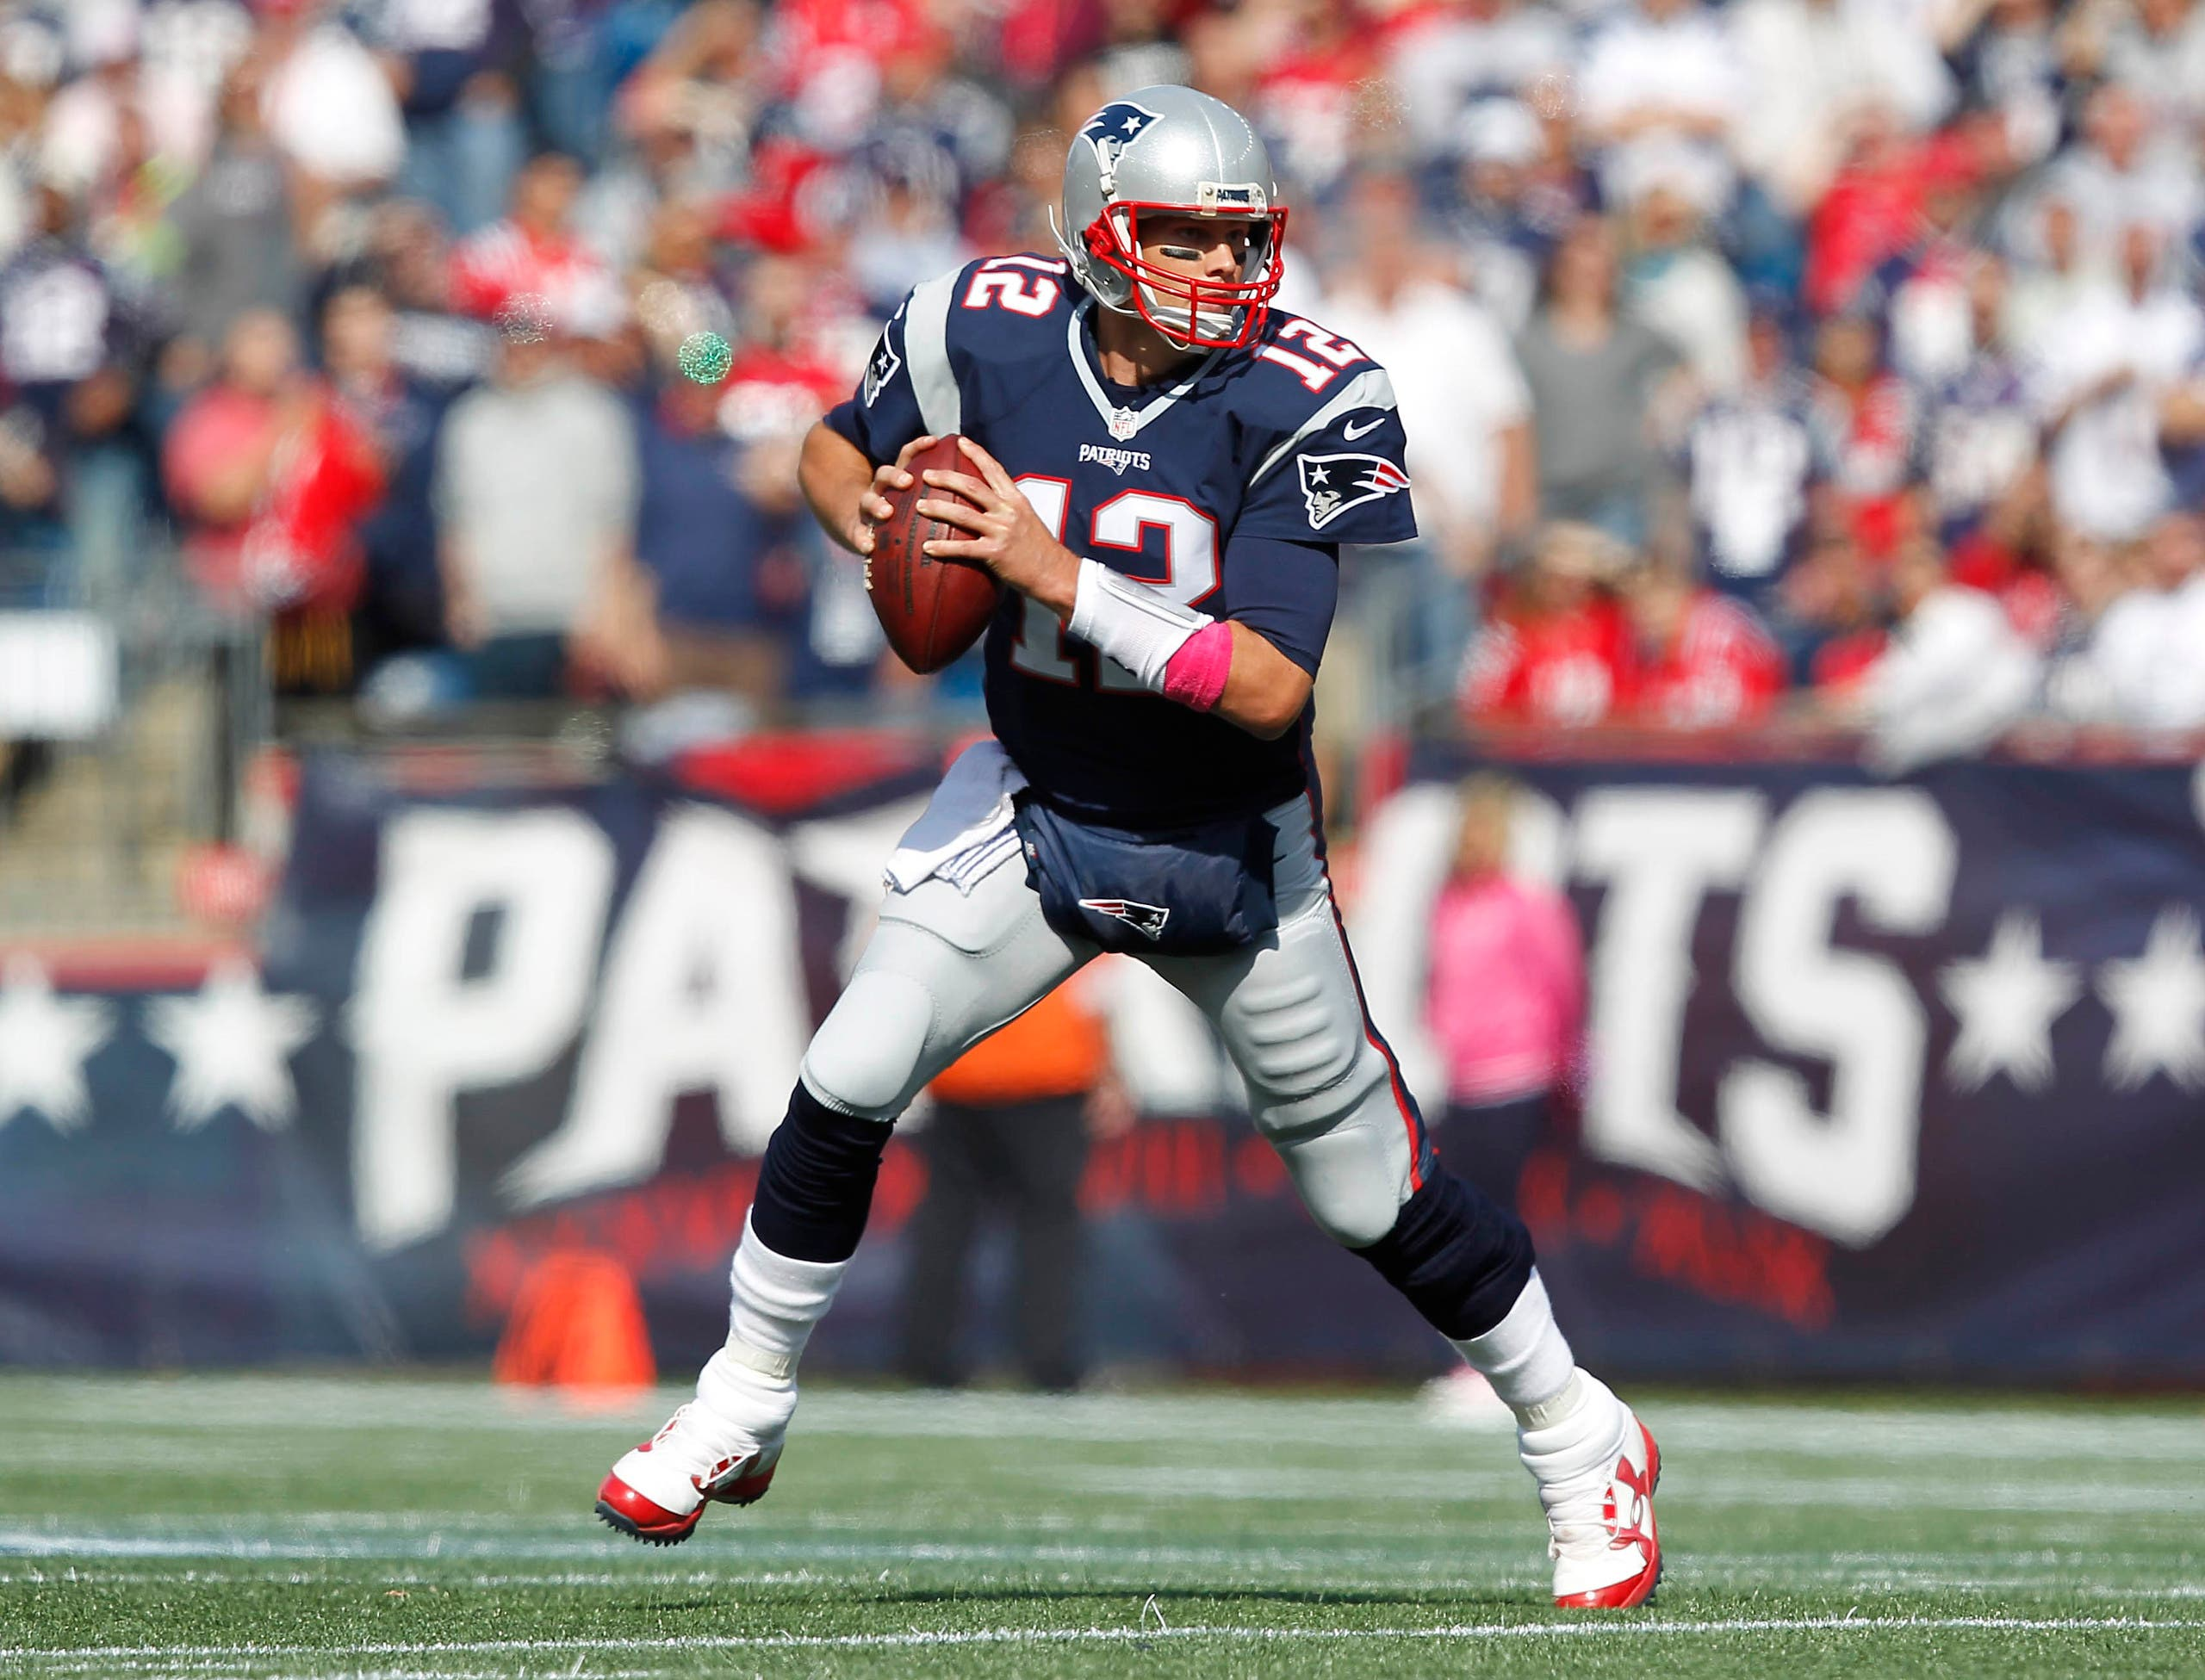 New England Patriots quarterback Tom Brady (12) scrambles out of the pocket during the first quarter against the Cincinnati Bengals at Gillette Stadium. Mandatory Credit: Stew Milne-USA TODAY Sports